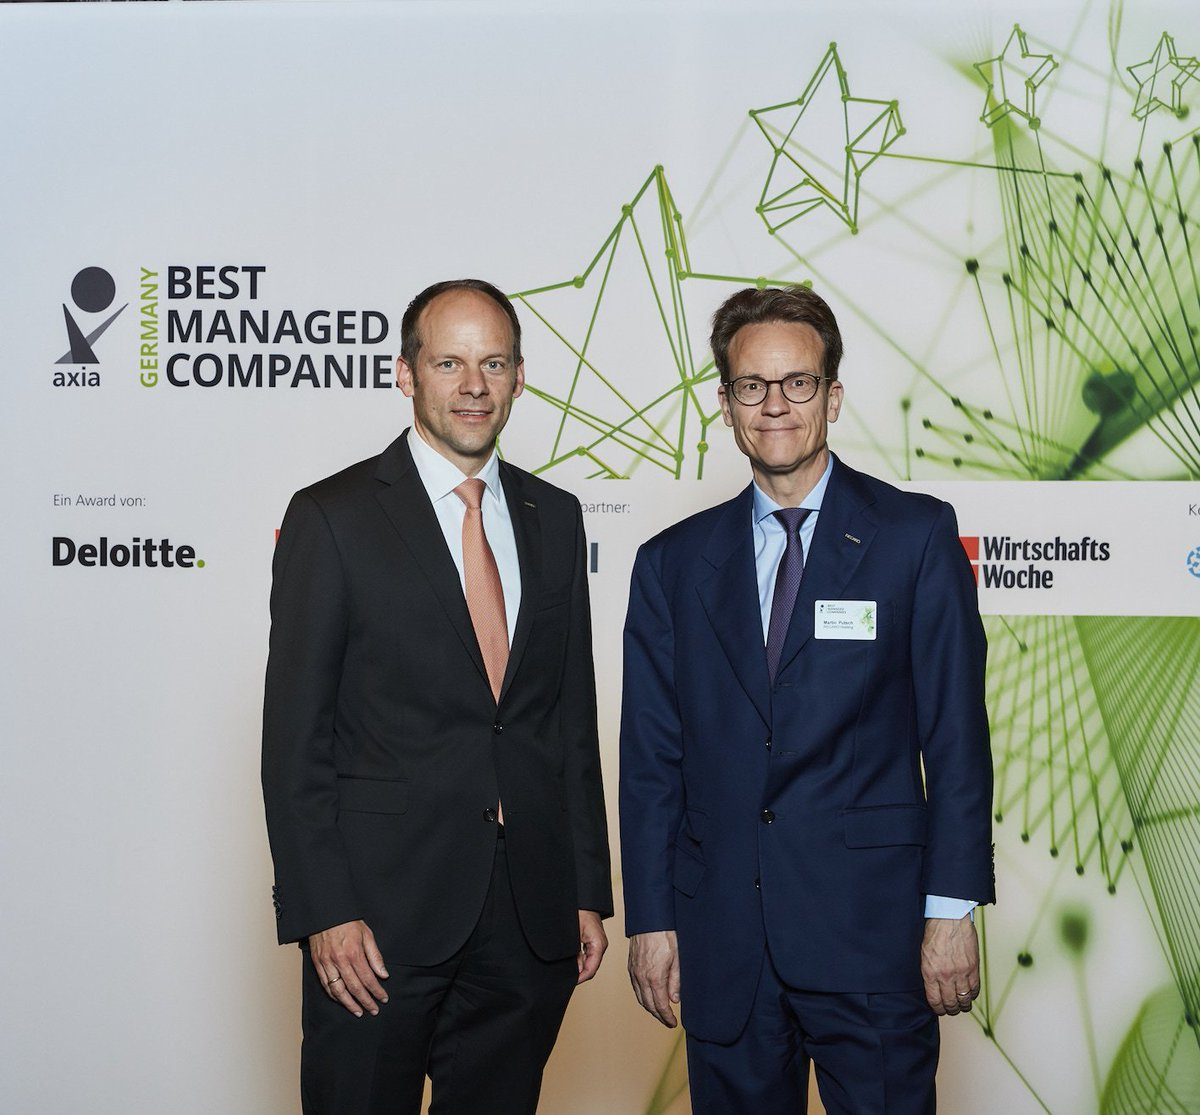 @recaro_de wins Best Managed Companies Award. https://t.co/gjdg1aTdxZ #AxiaBMC https://t.co/zj7ERwDOX6